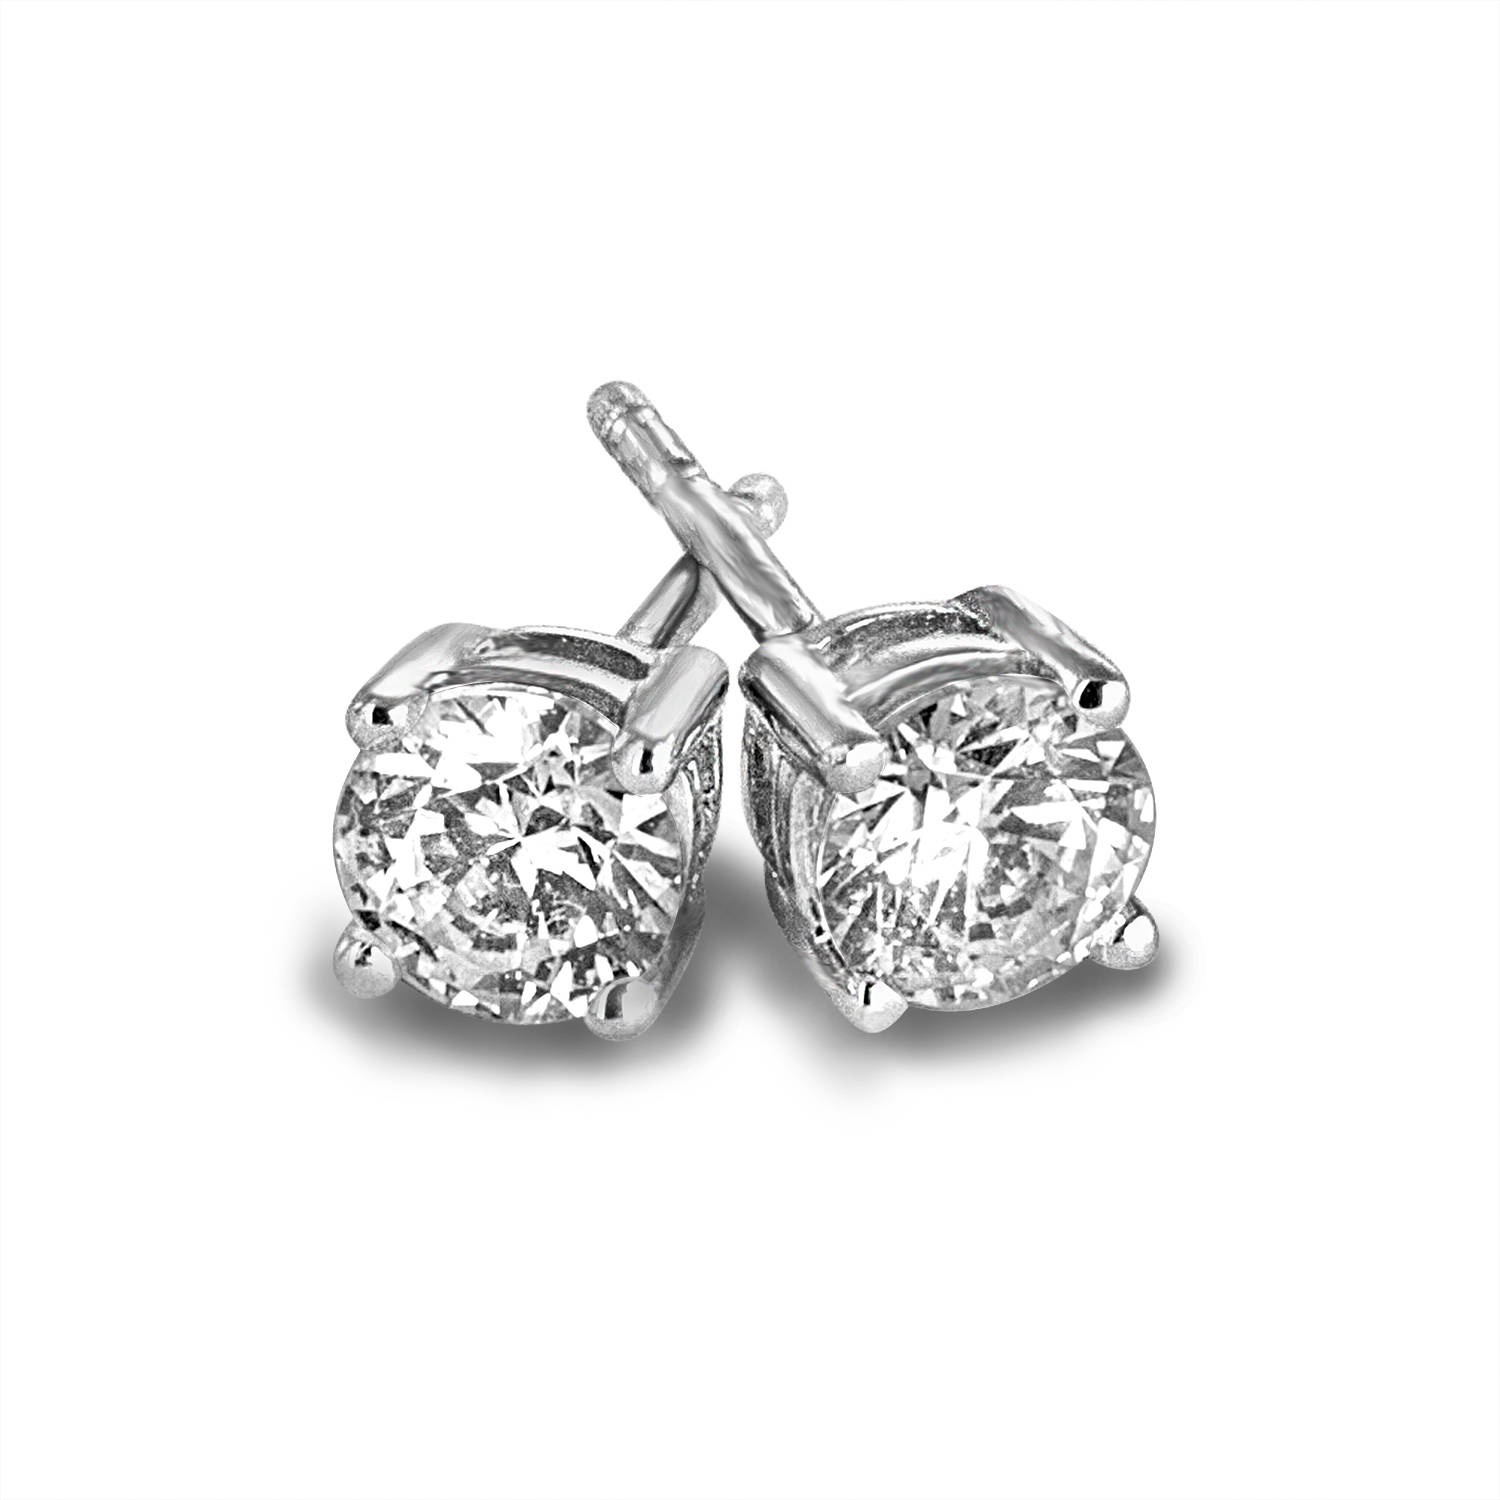 1 Carat T.W. Round Diamond 10kt White Gold Stud Earrings